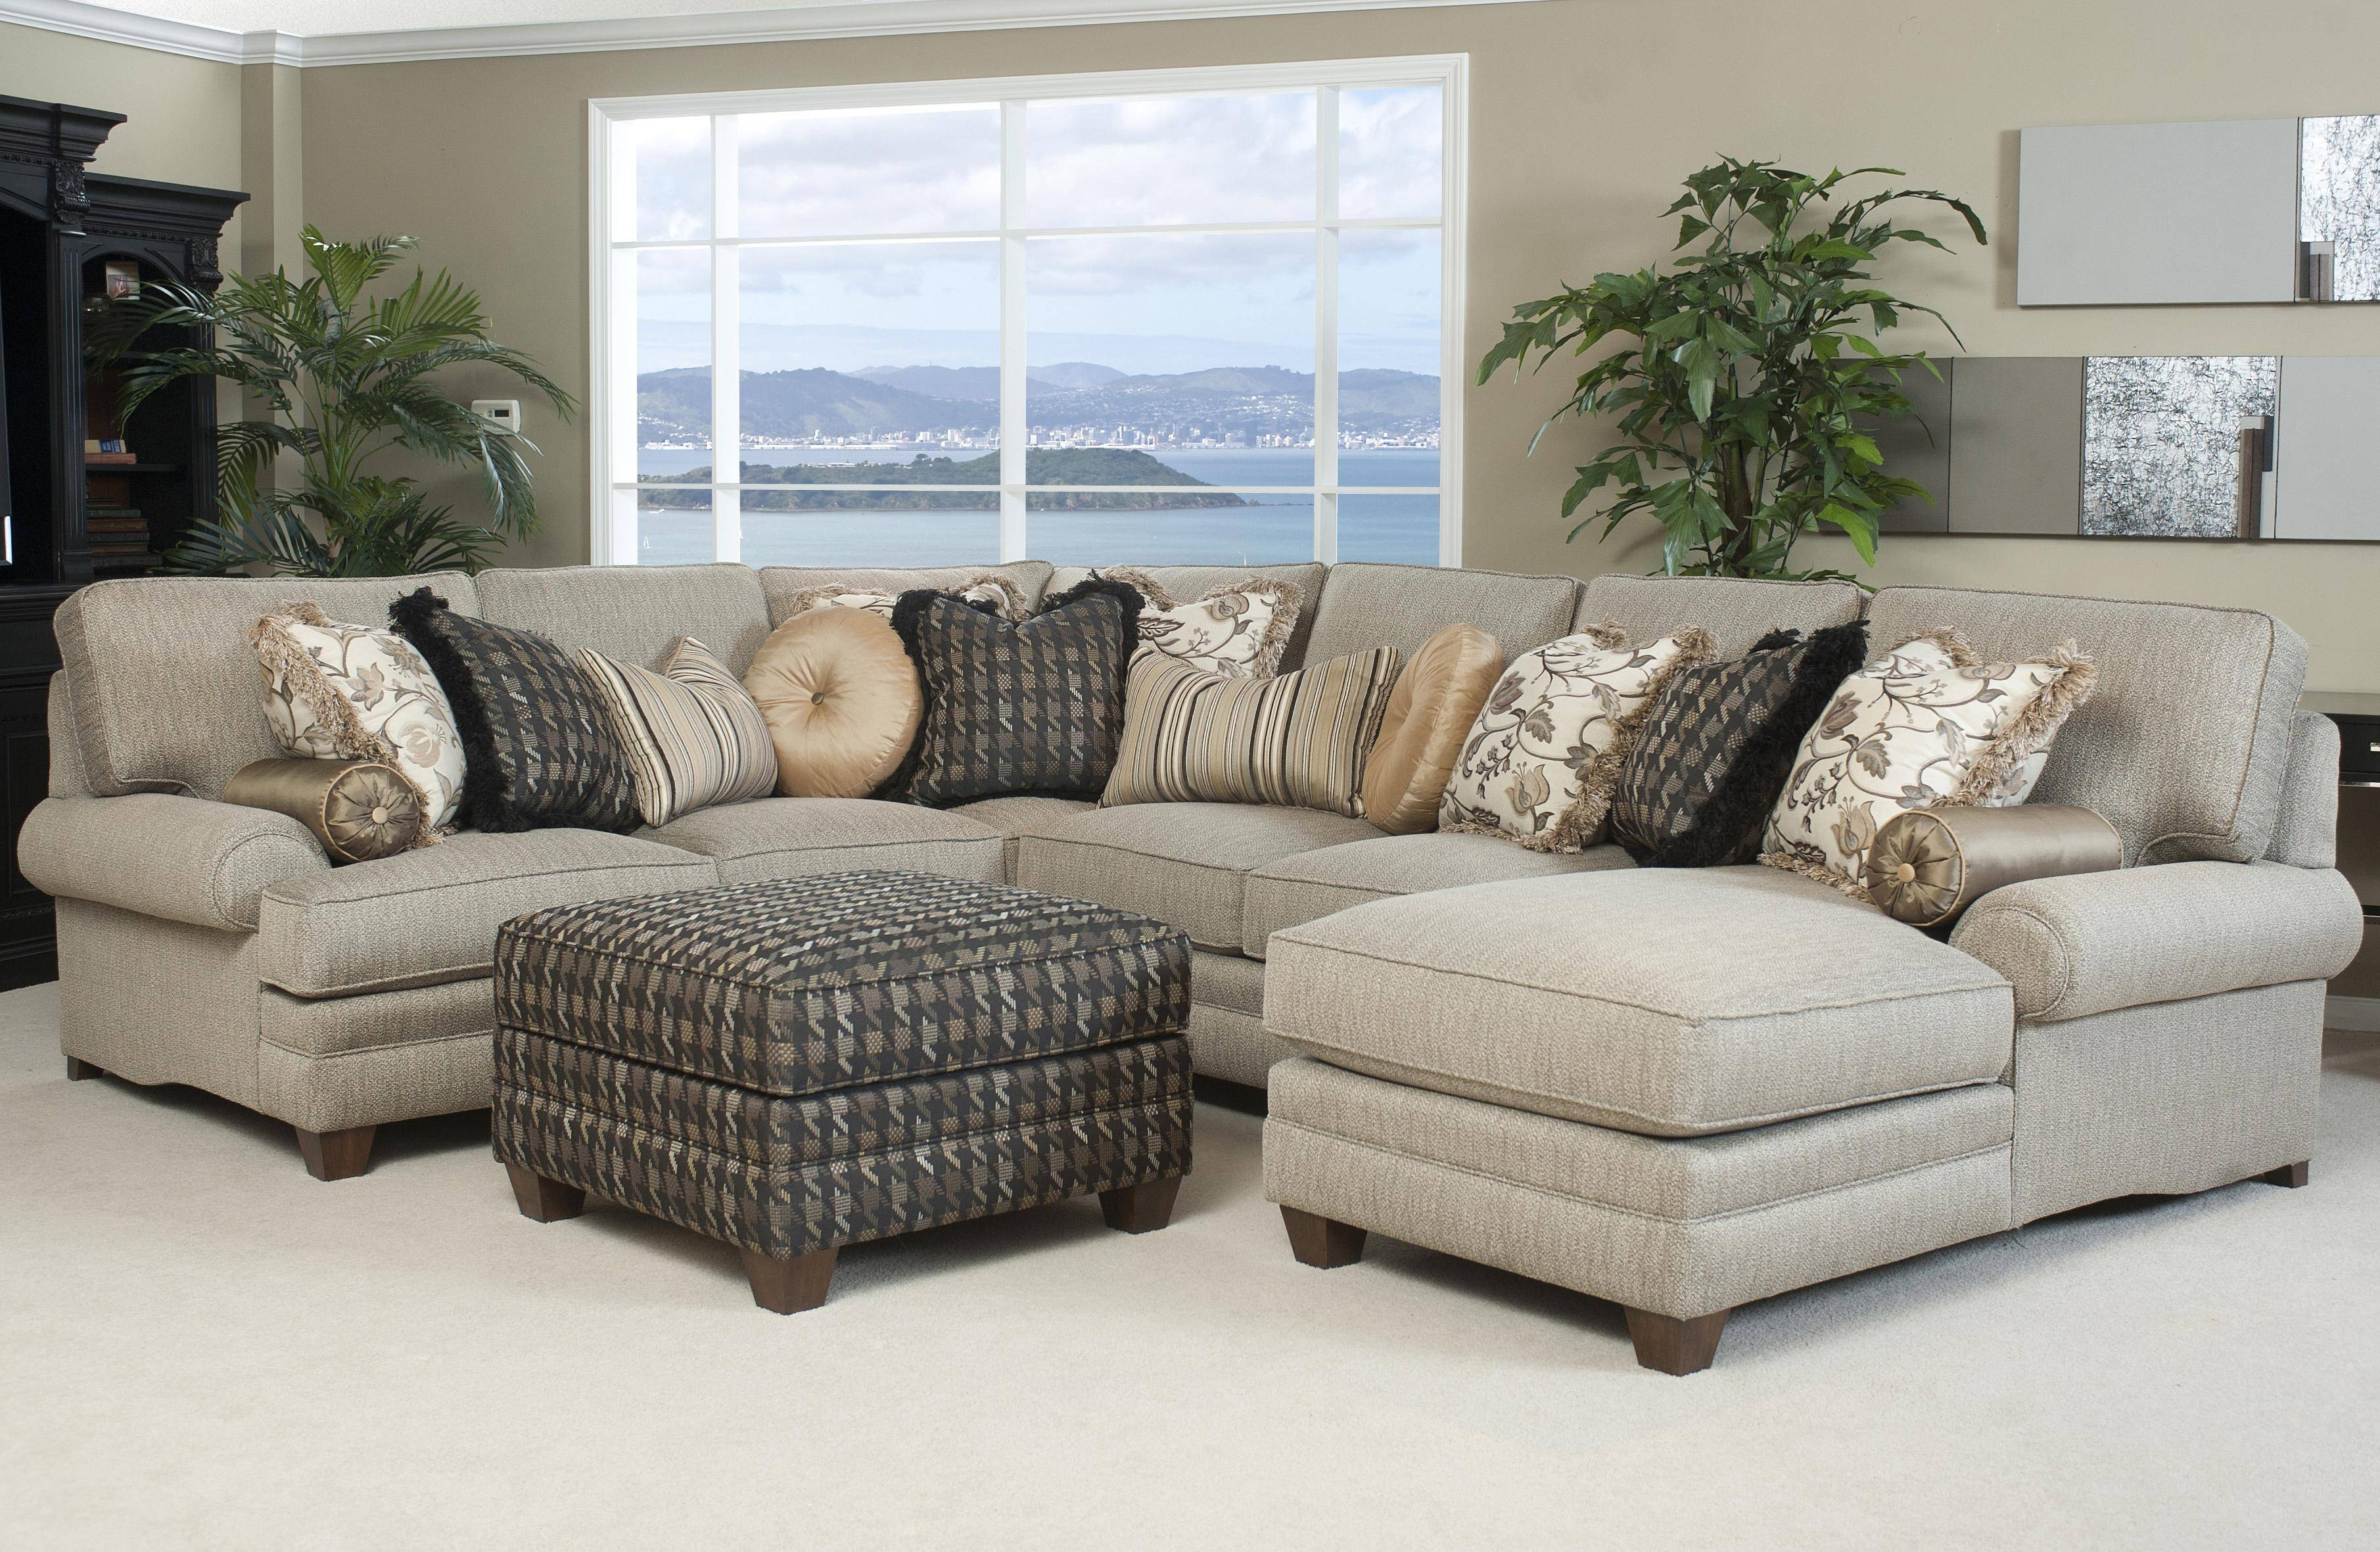 Wooden Fabric Sofa Sectional - Ftfpgh with regard to Fabric Sofas (Image 30 of 30)